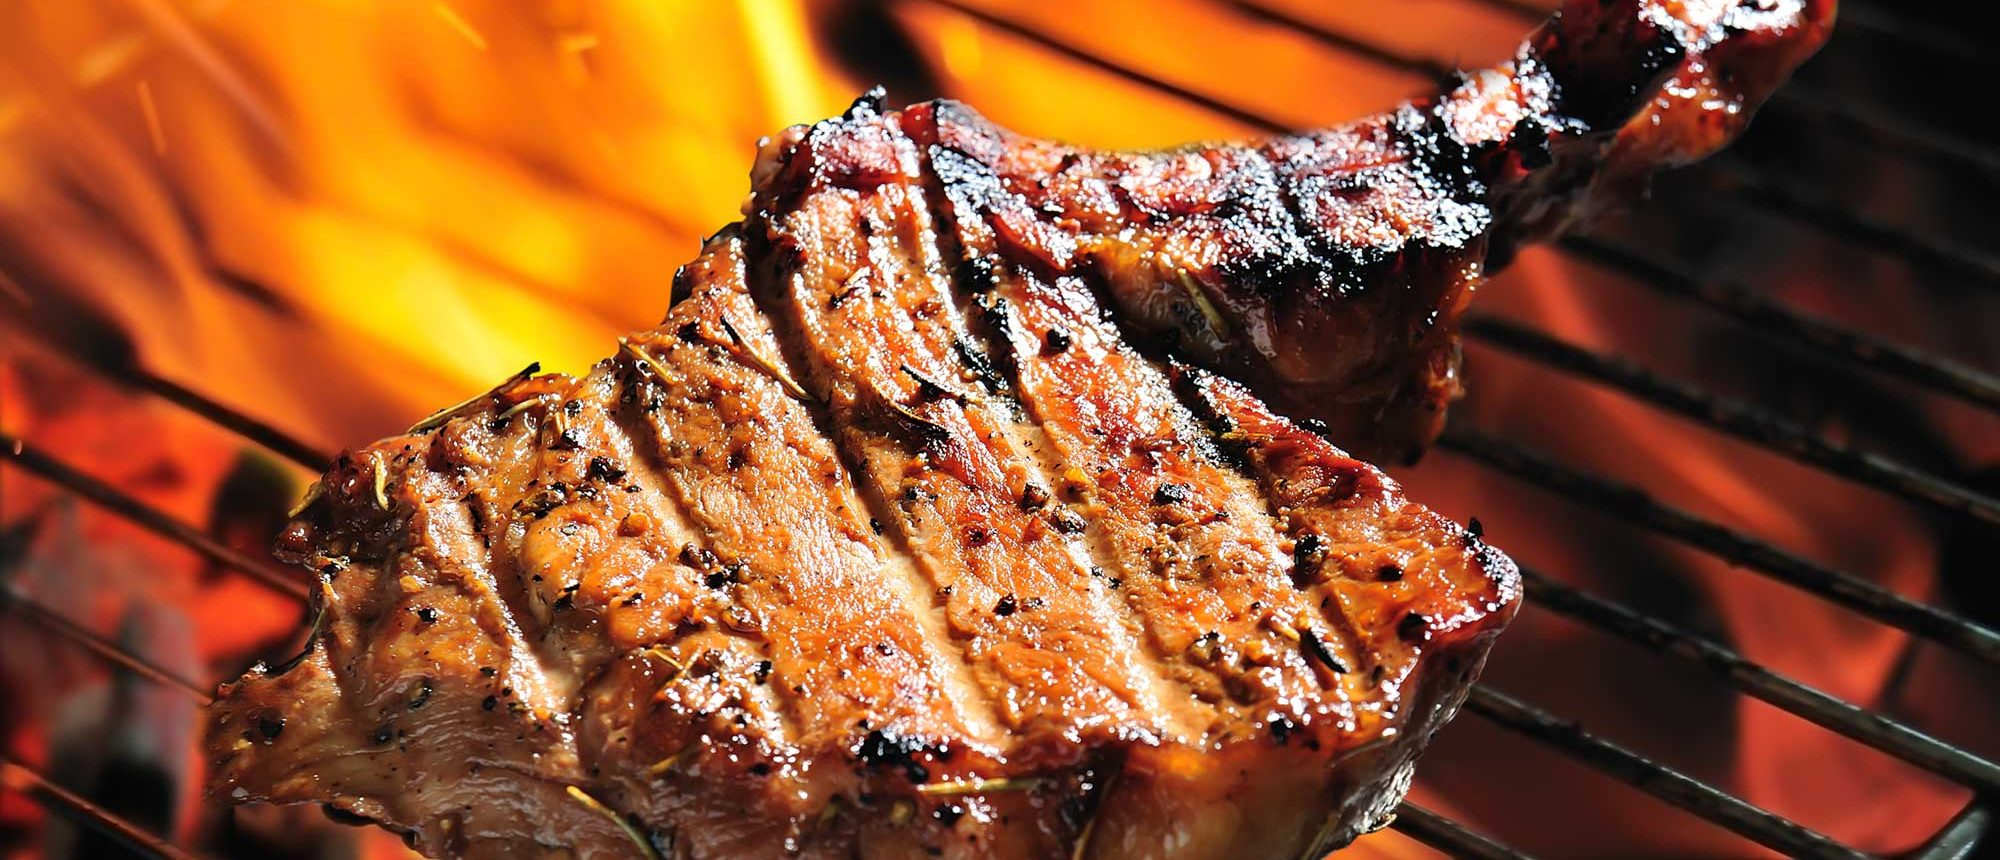 Steak being grilled over an open flame.